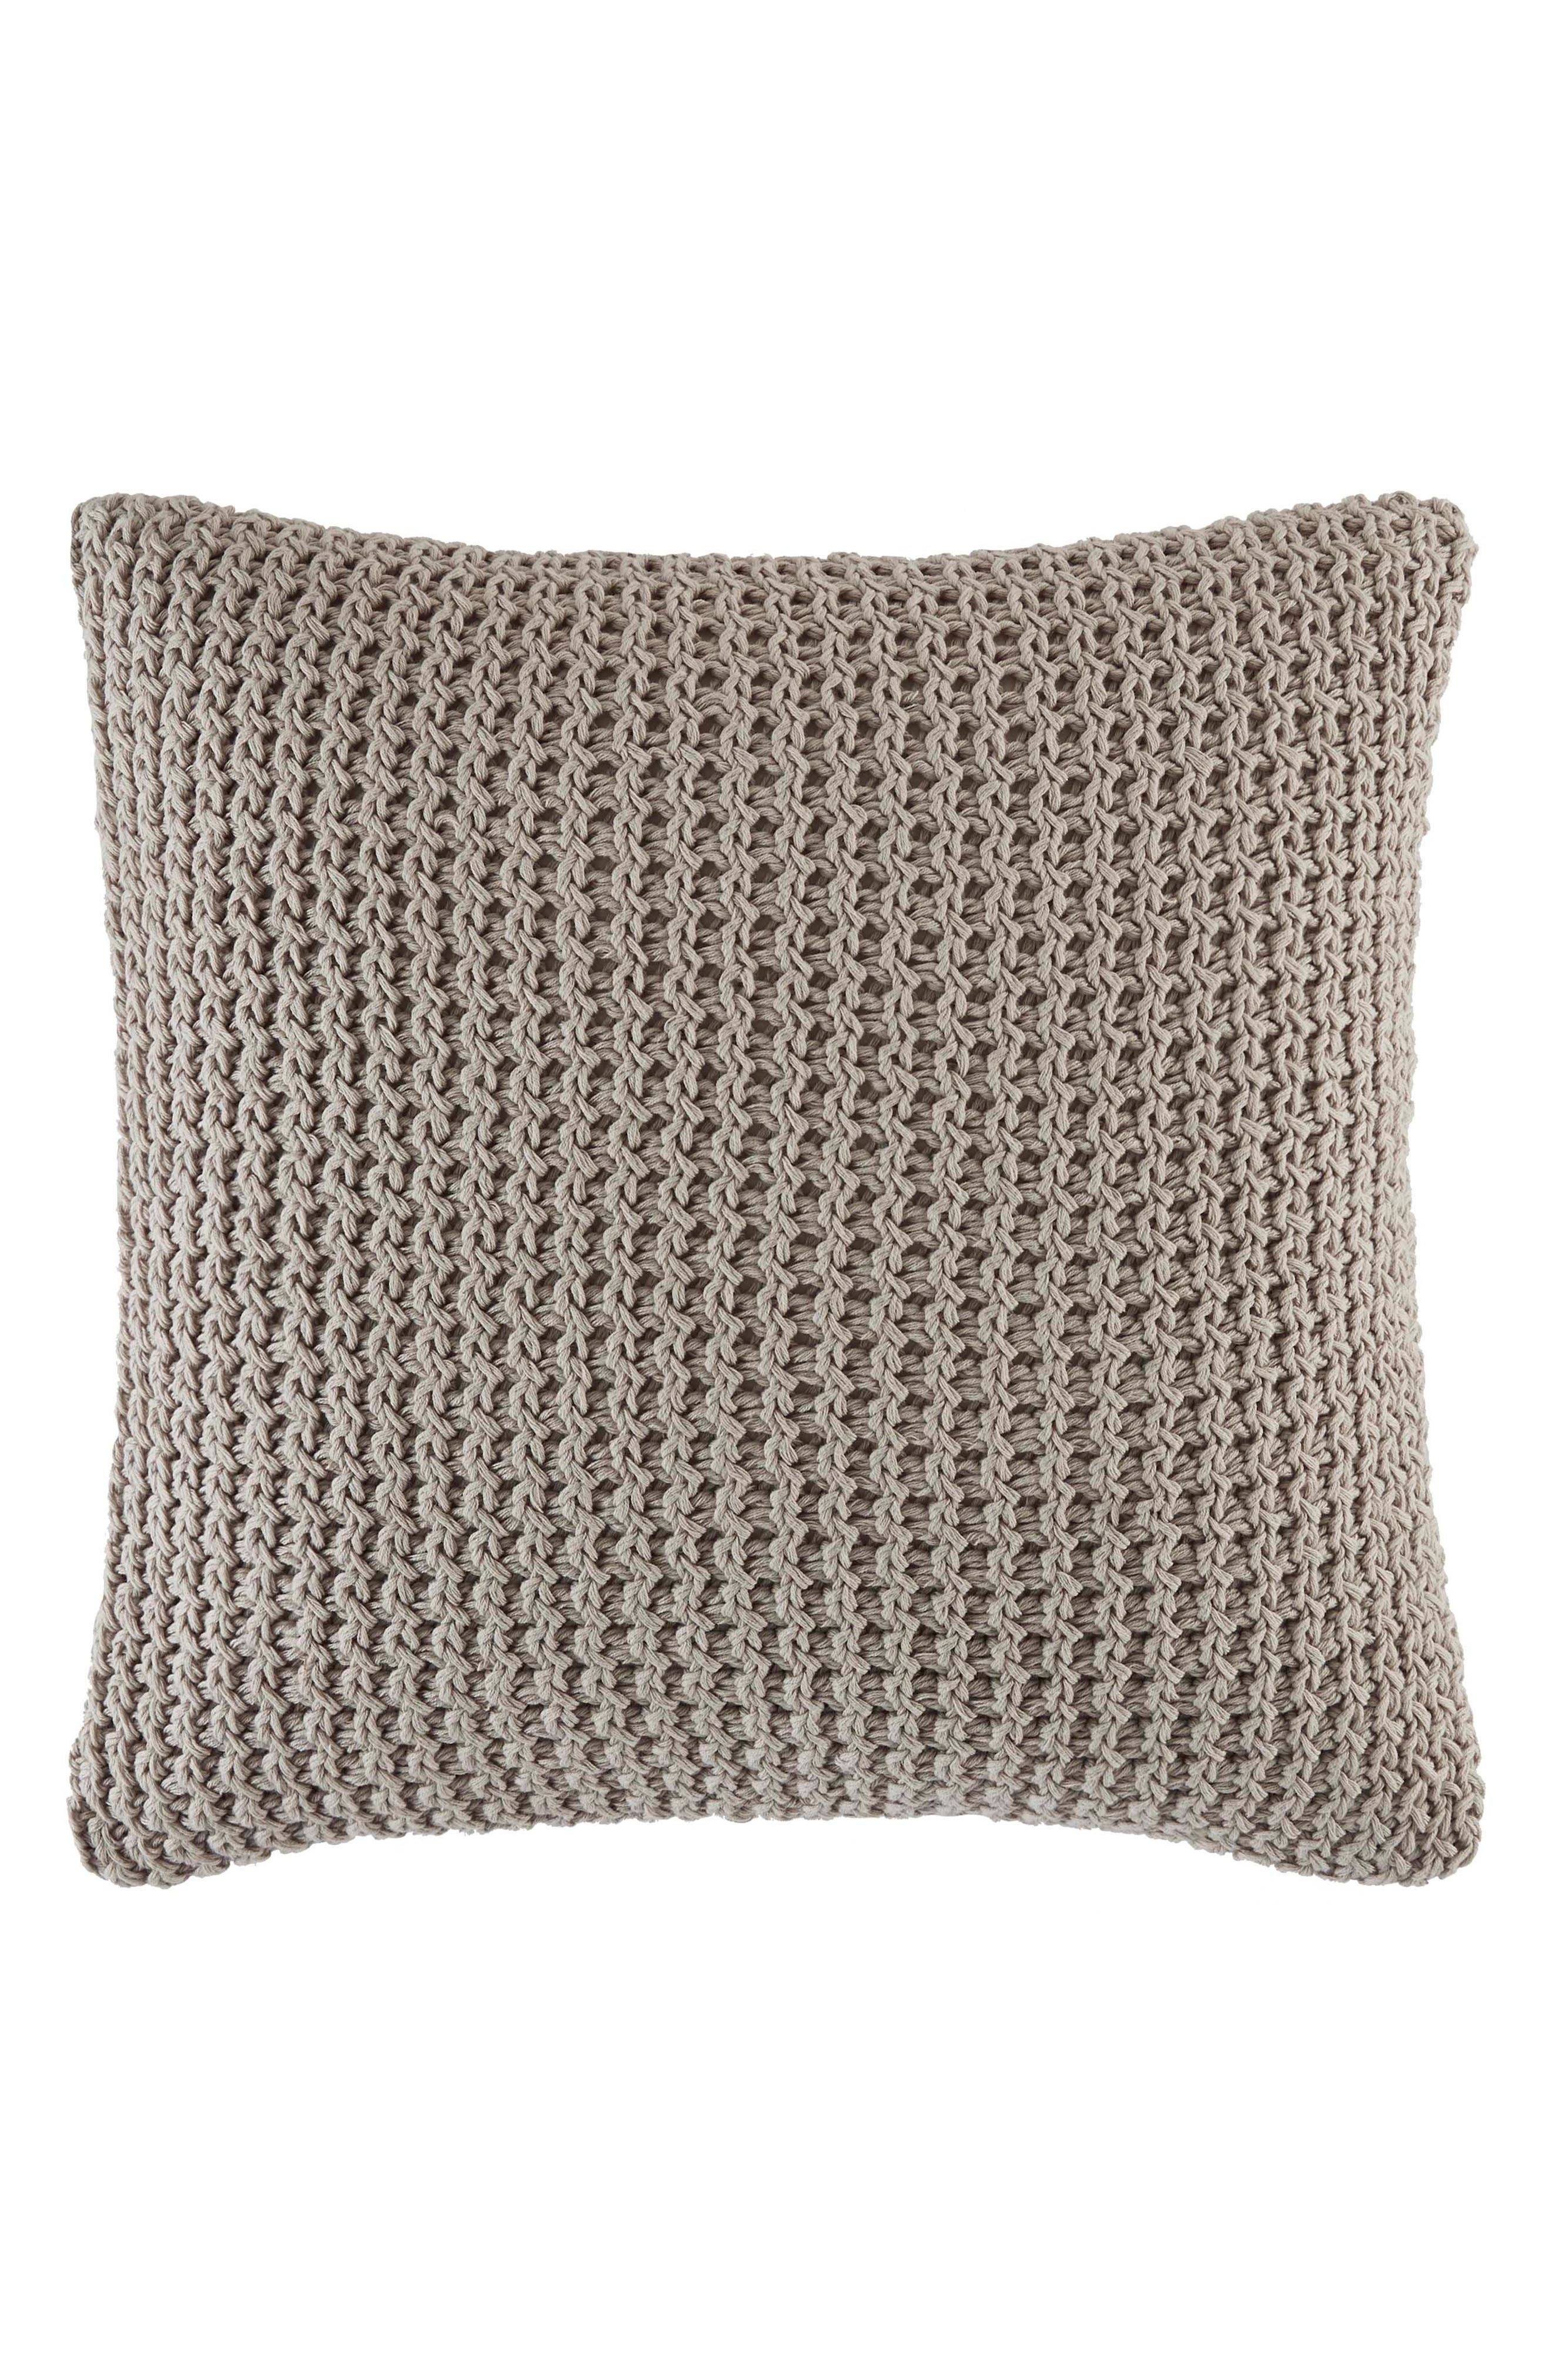 Knotted Pillow,                         Main,                         color, 055